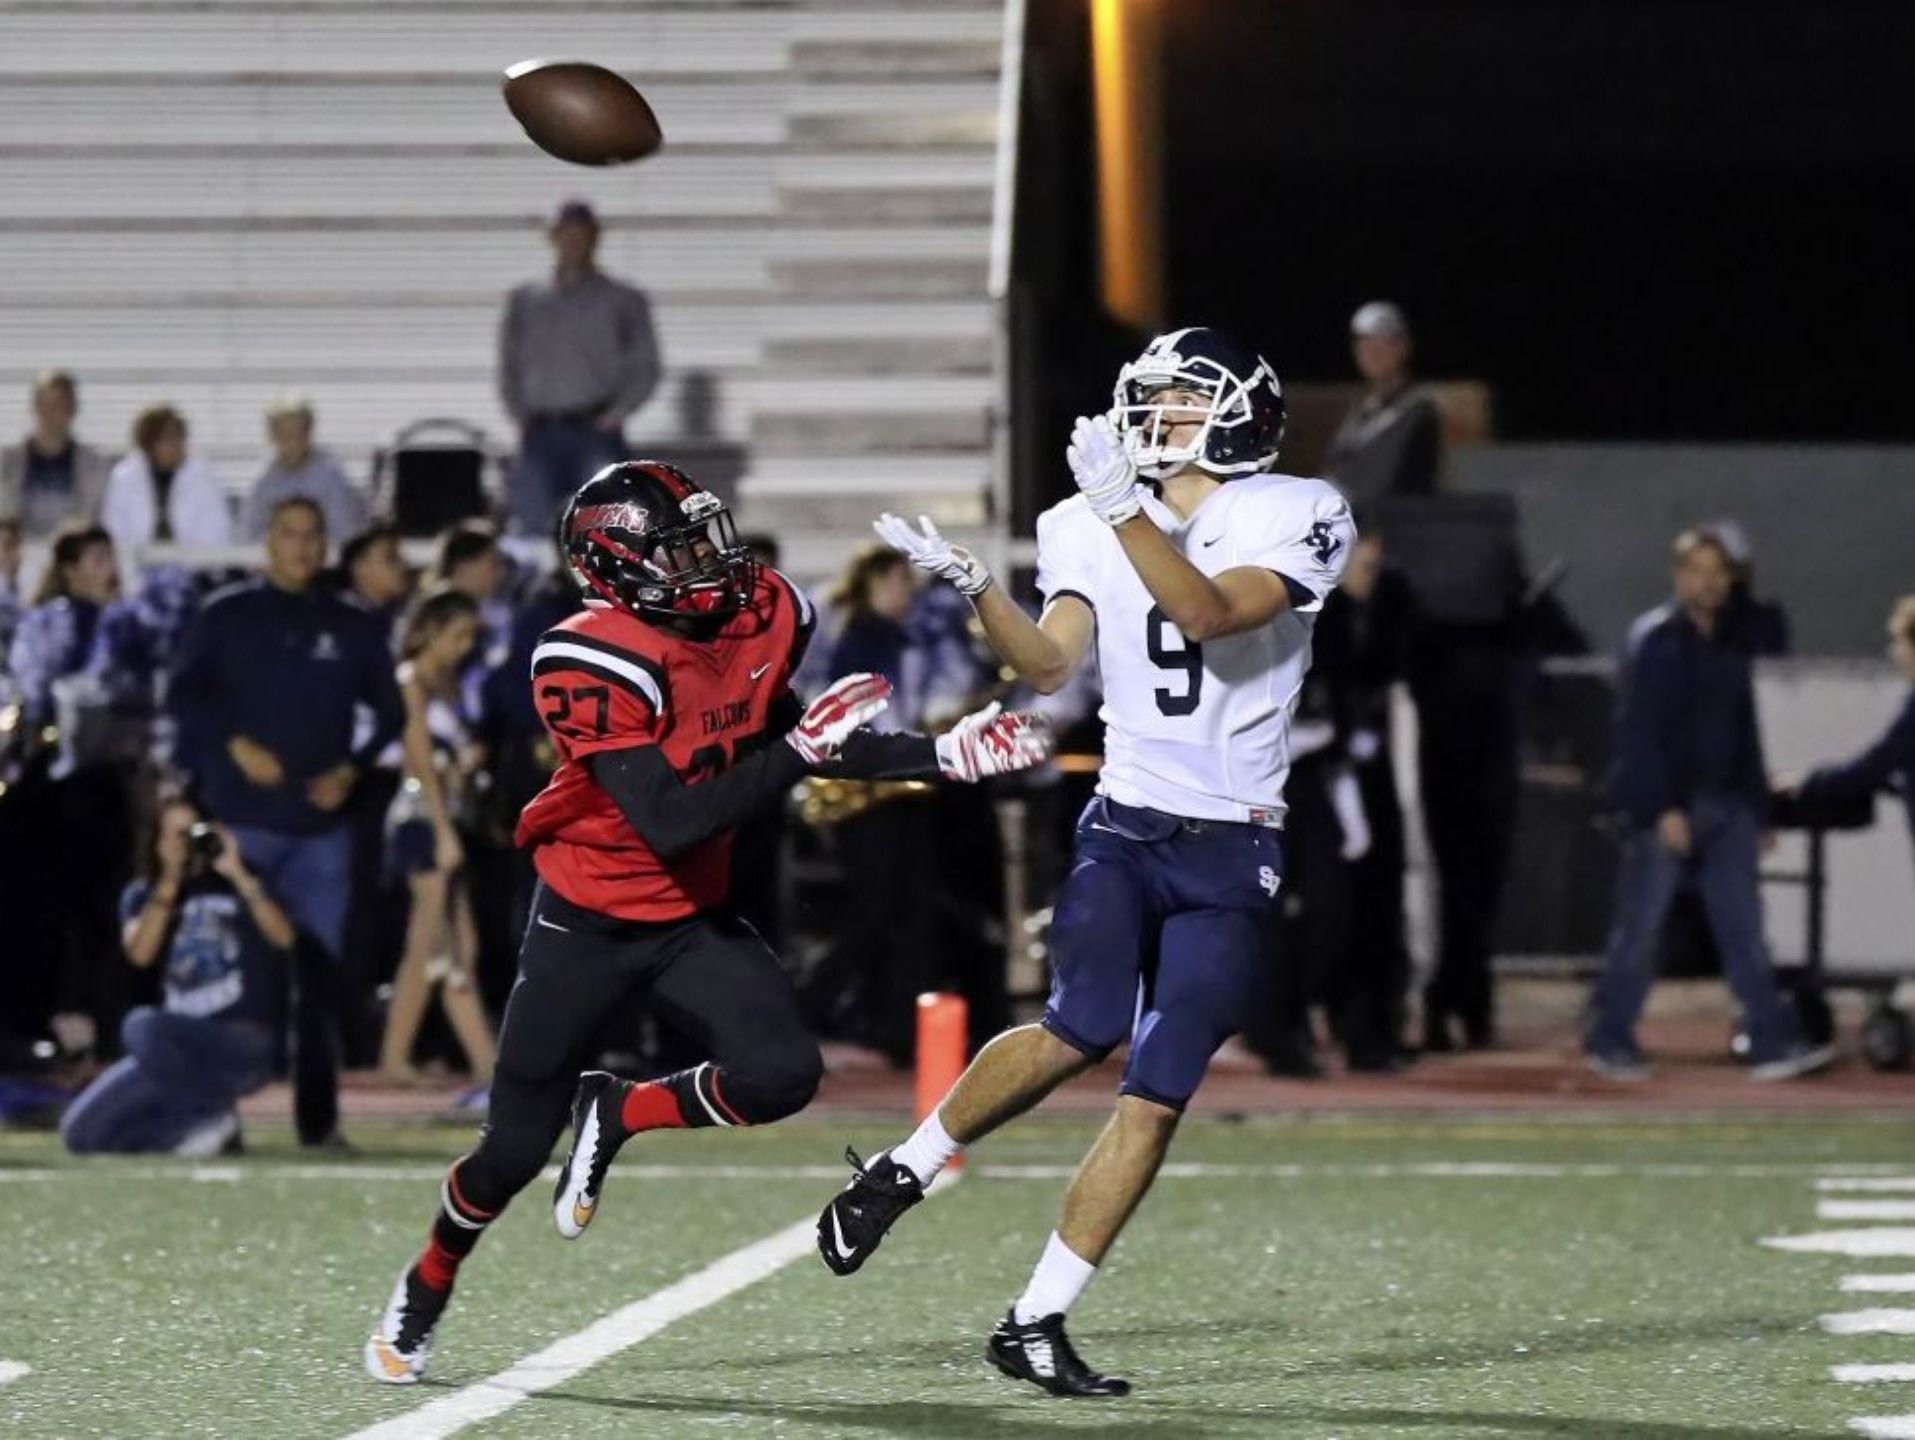 Smithson Valley senior wide receiver Derek Housler had seven catches for 166 yarrds and one TD in the Rangers' 35-0 playoff win over Stevens last week.